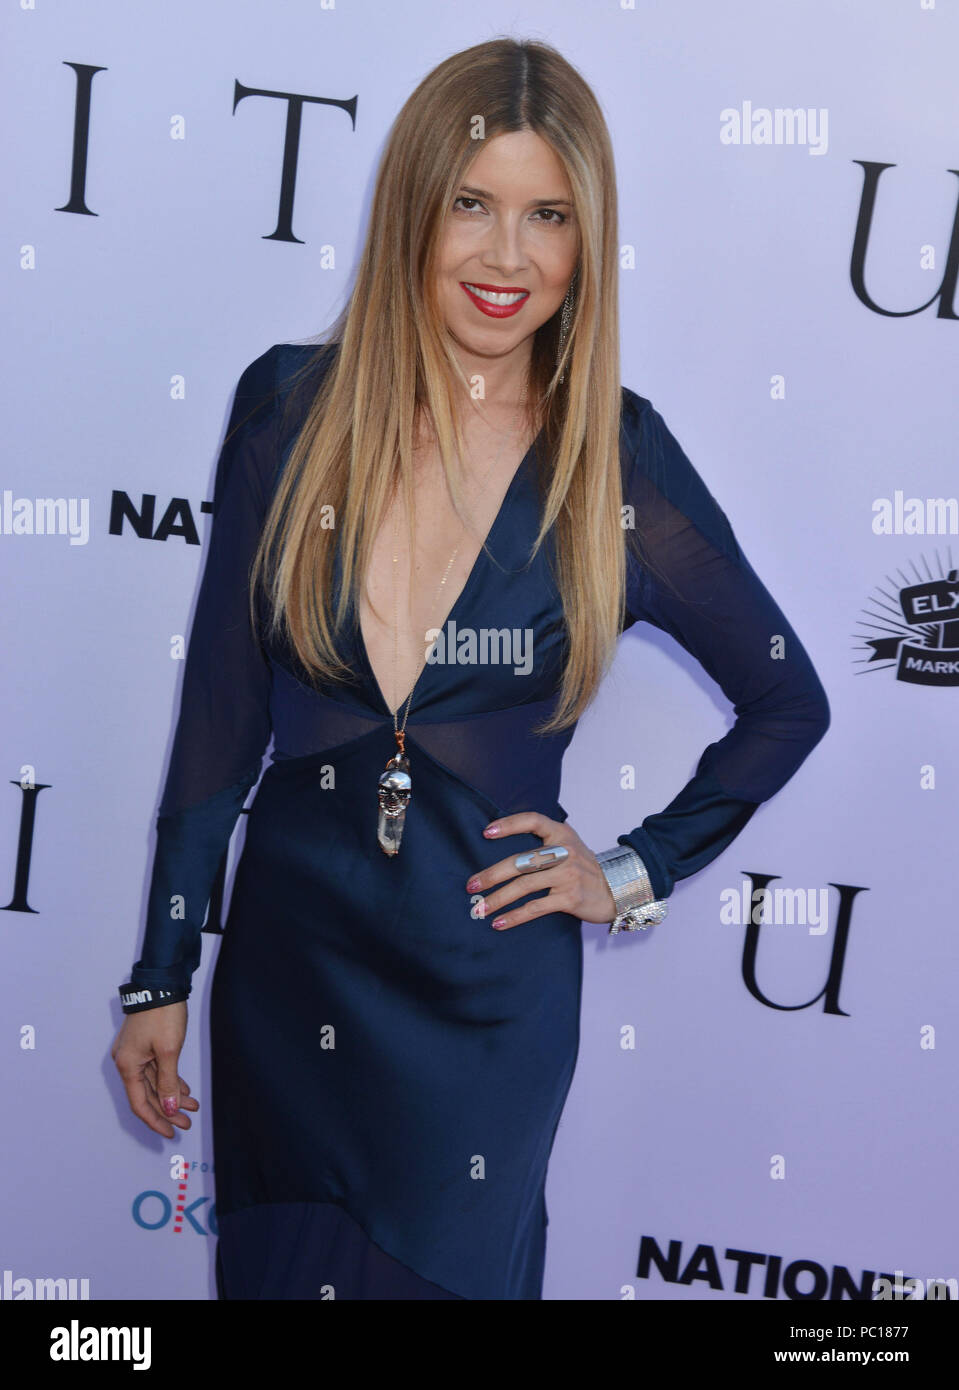 9f2bf99c5c3b Simone Reyes 117 at the Unity Premiere at the Director Guild Of ...